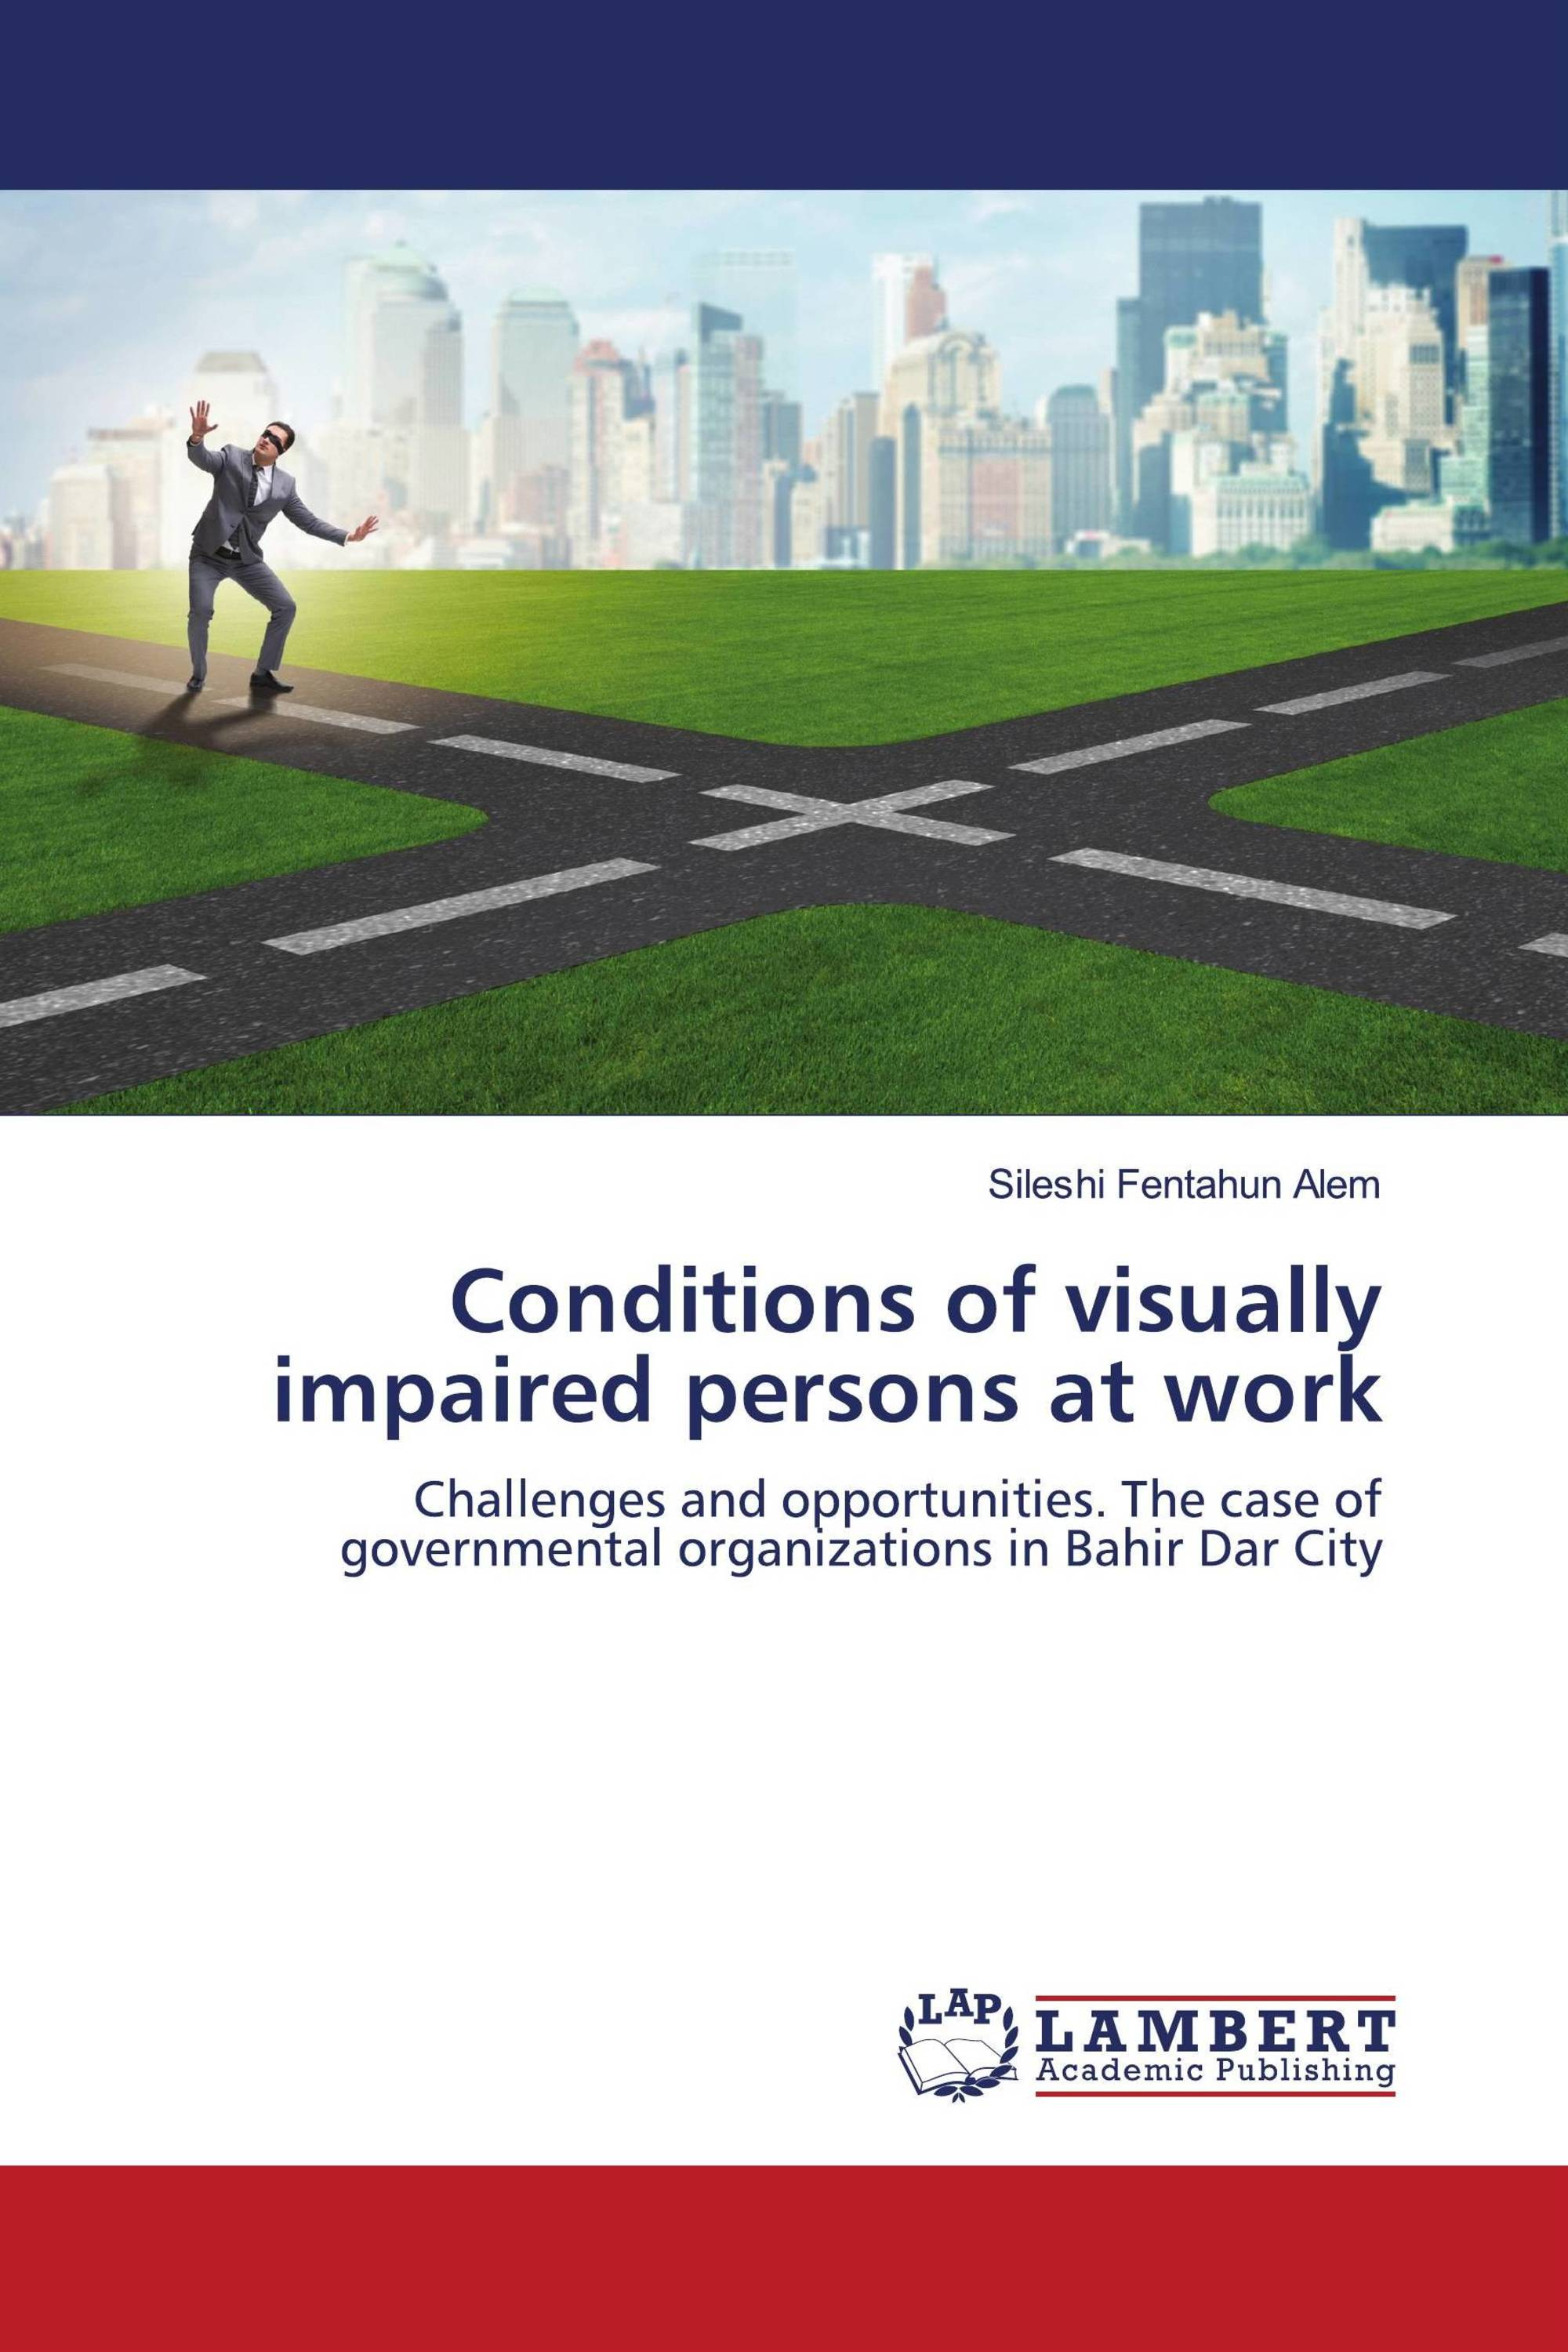 Conditions of visually impaired persons at work